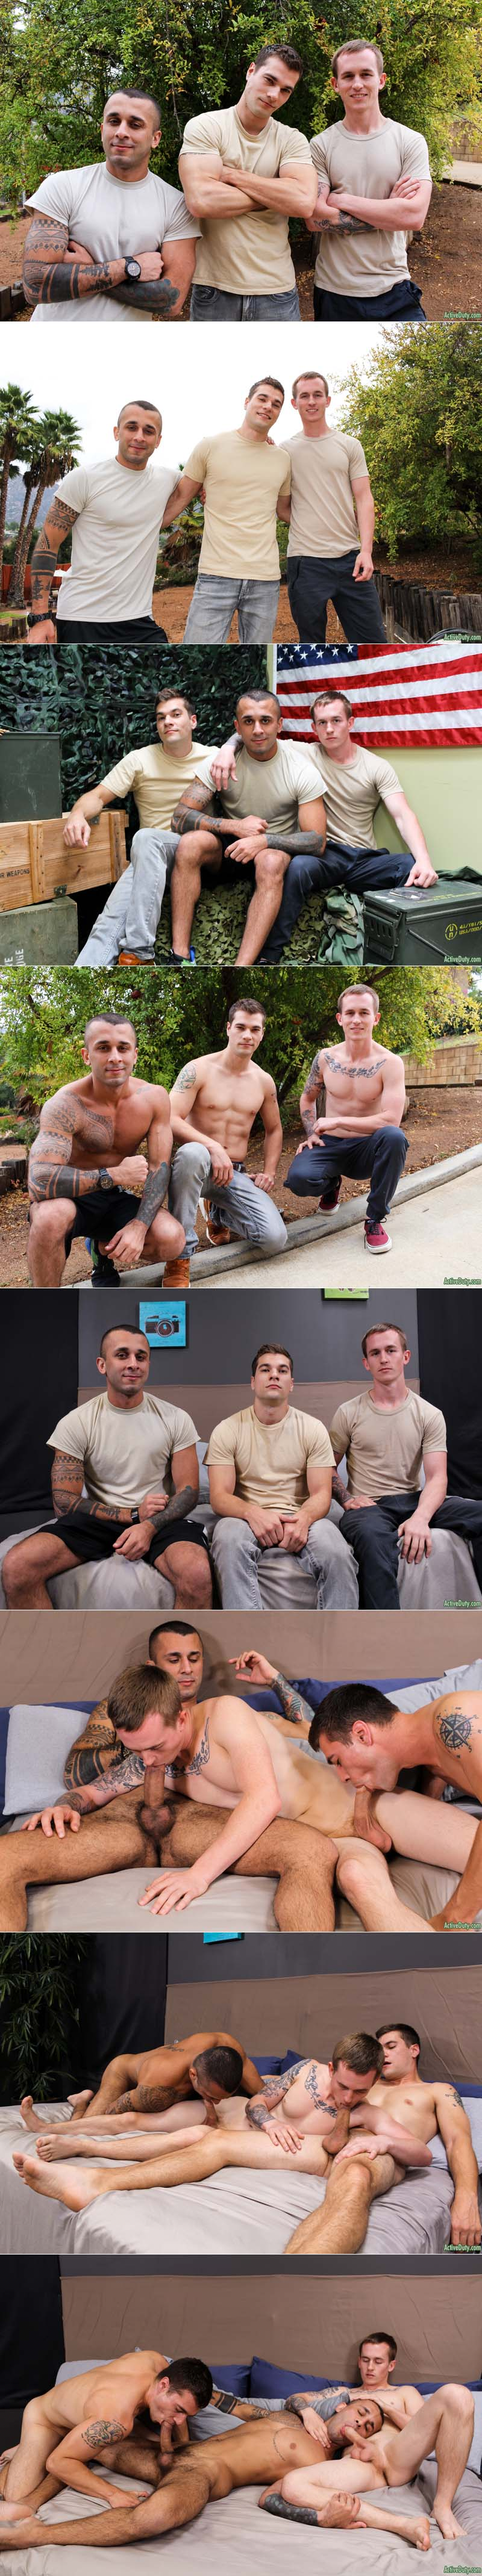 Laith Inkley, Kevin Texas and Princeton Price (Bareback) at ActiveDuty